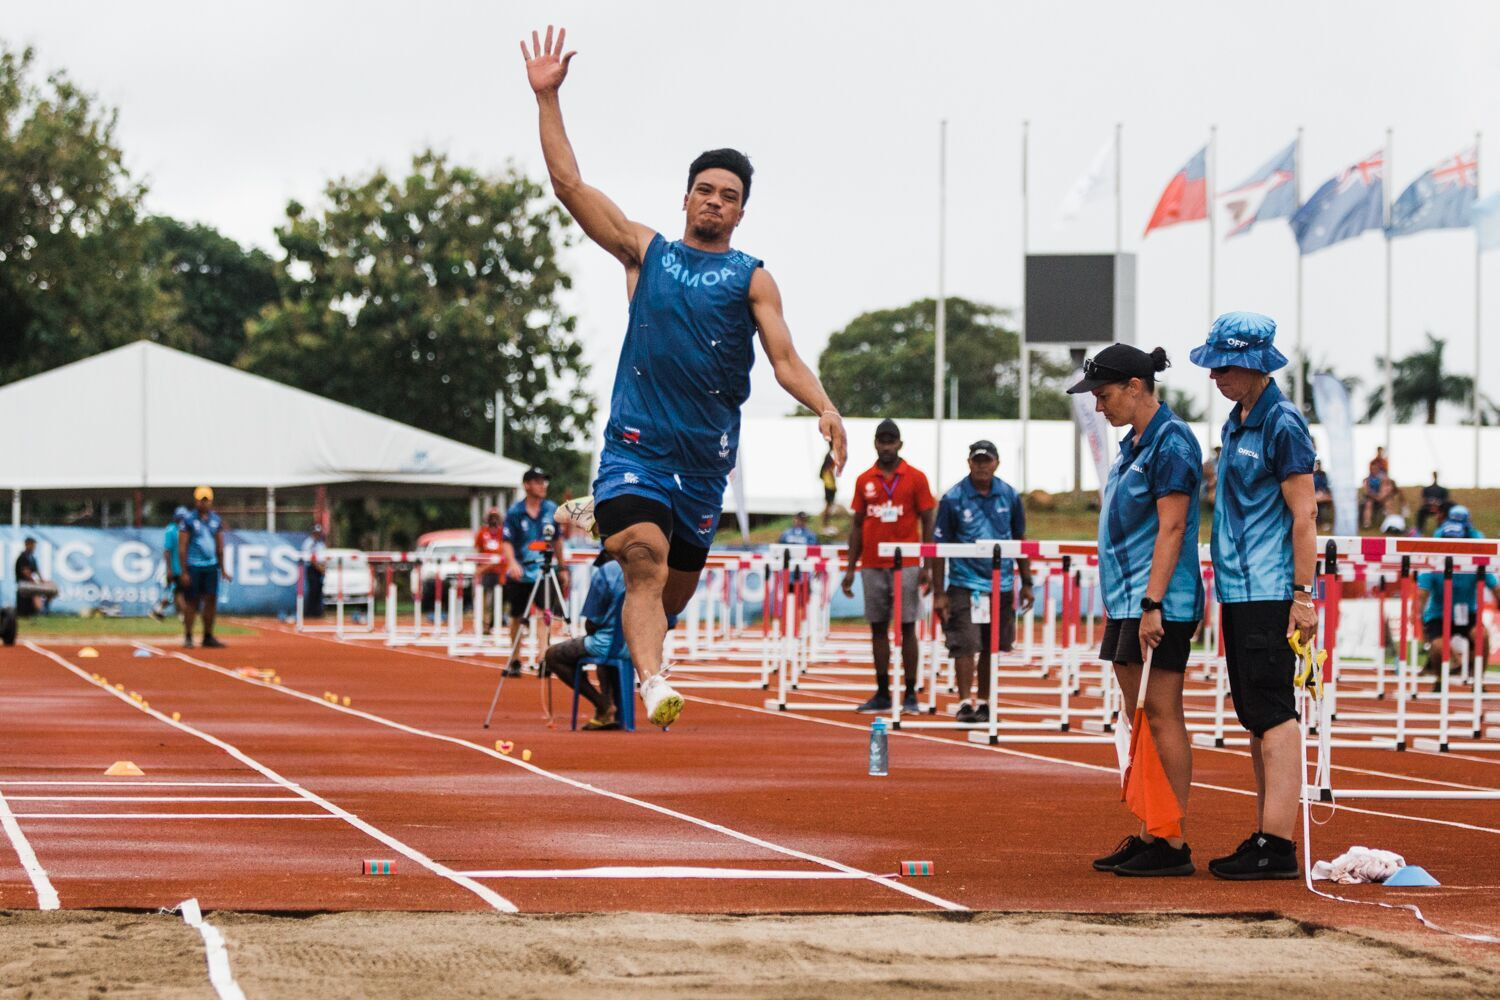 Samoa's Kelvin Masoe thrilled a packed crowd at Apia Park Stadium as he claimed gold in the men's long jump ©Samoa 2019